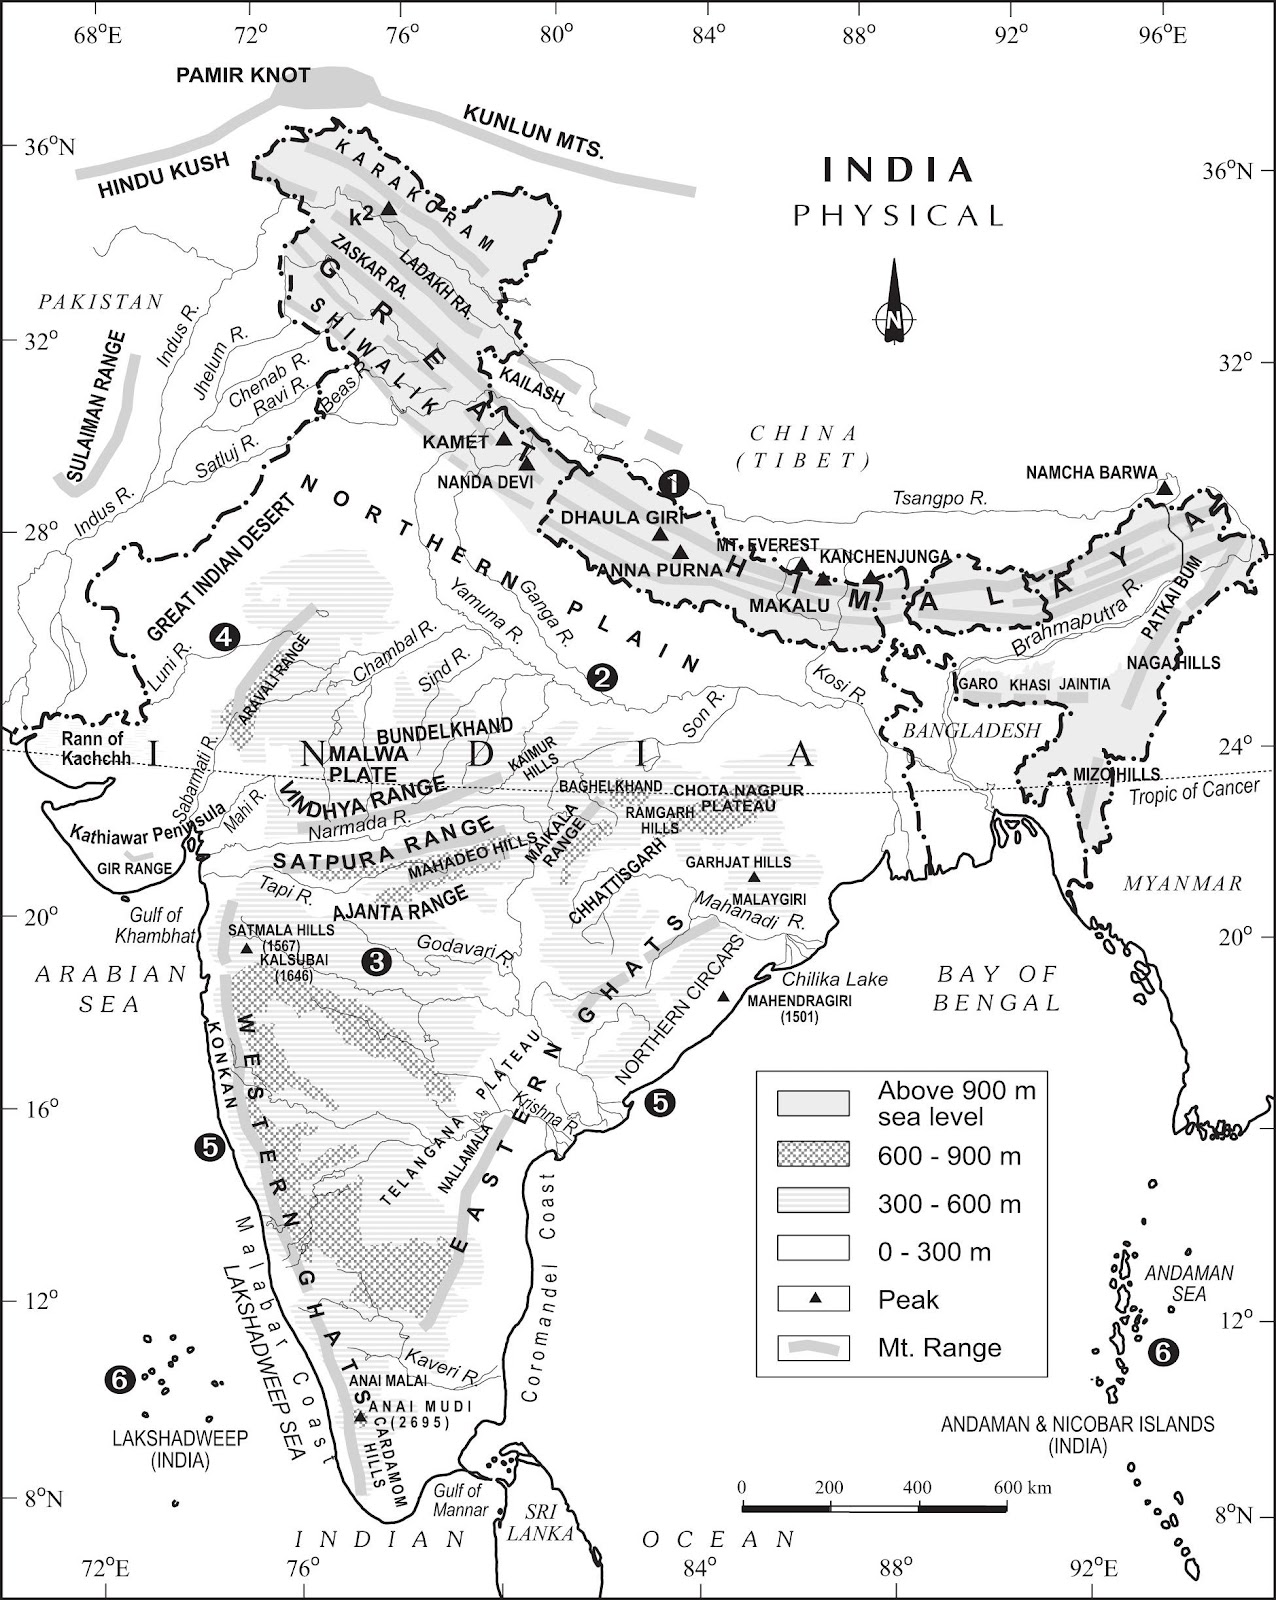 UPSC general studies and current affairs 2015 Physical Features Map